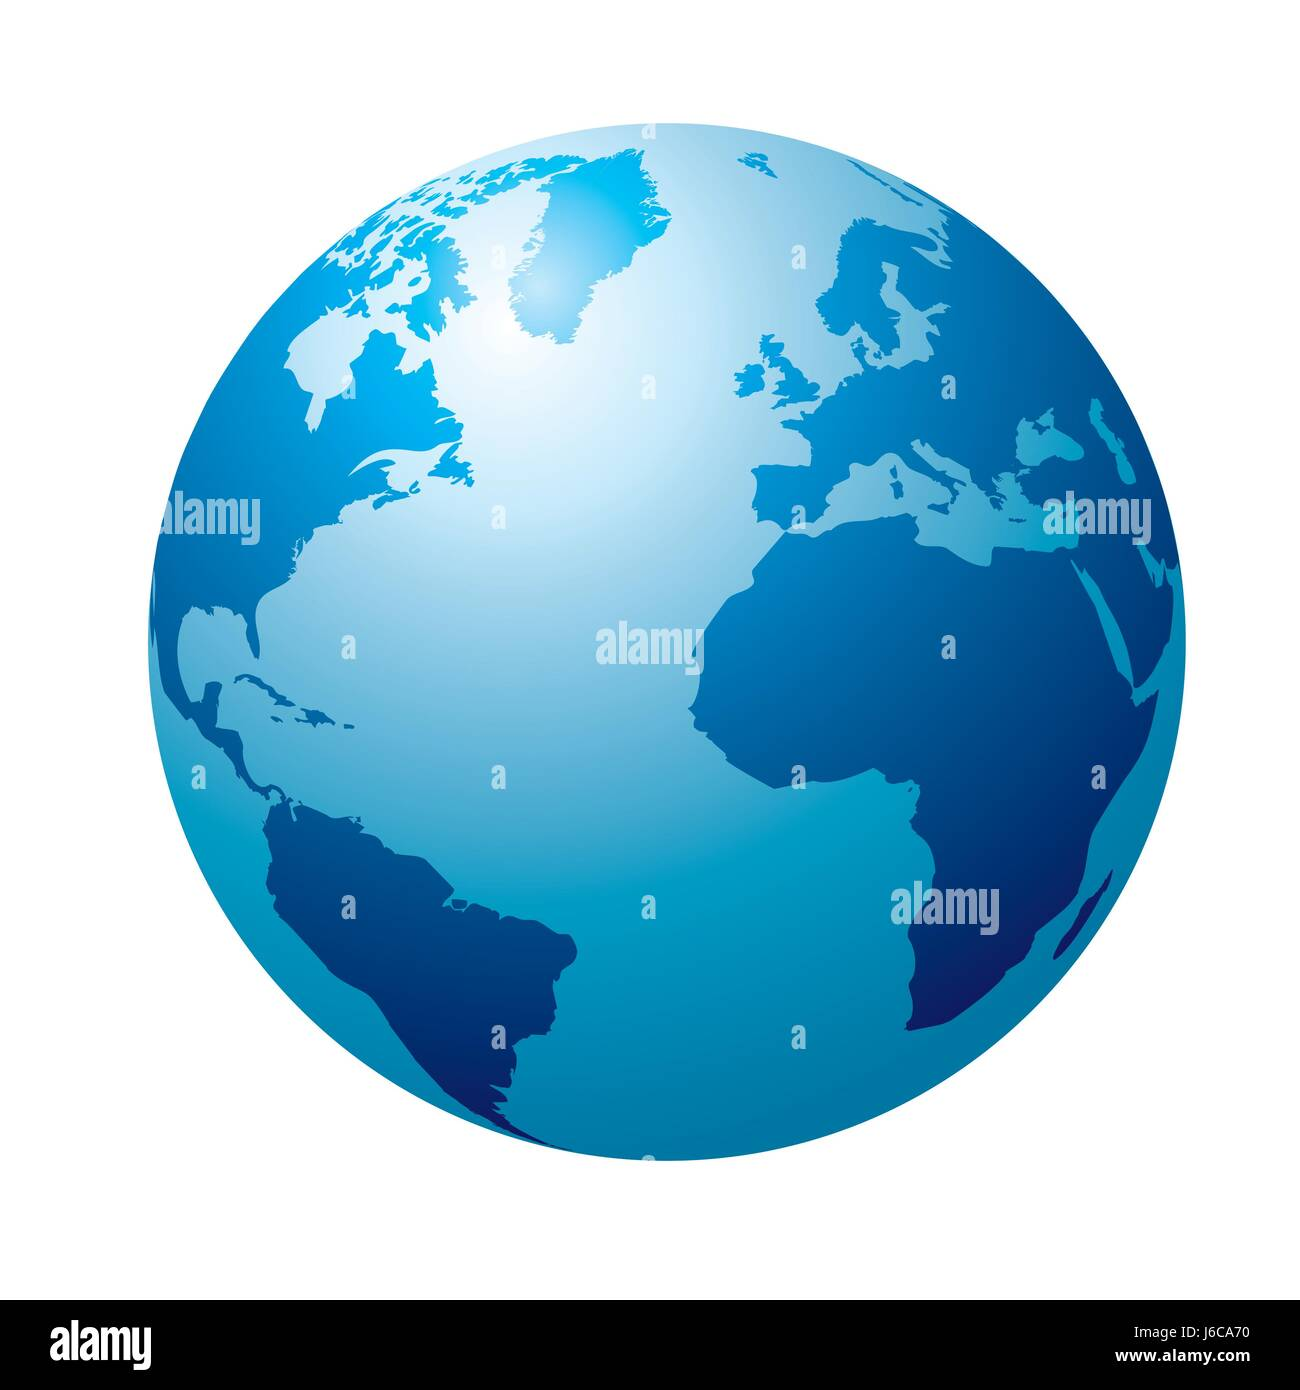 Science usa abstract globe planet earth world map atlas map of the science usa abstract globe planet earth world map atlas map of the world blue gumiabroncs Images